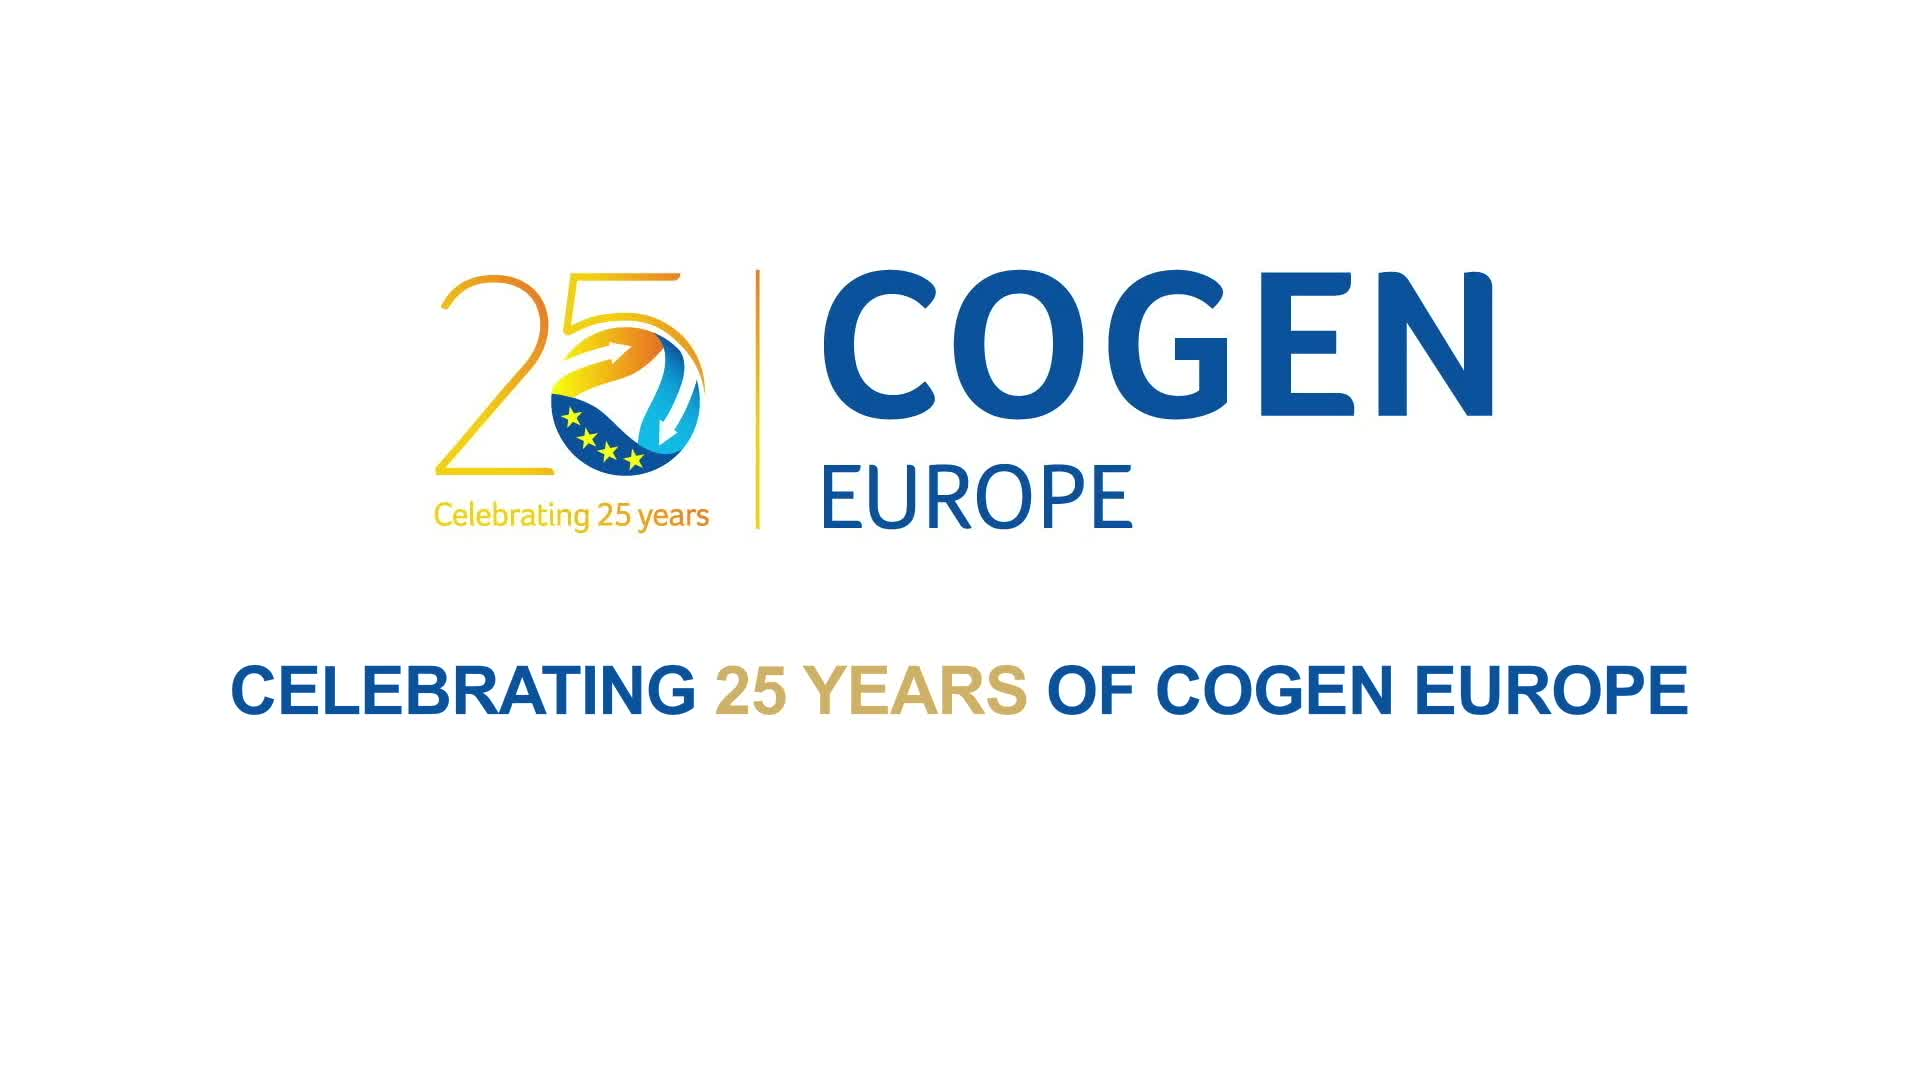 COGEN Europe celebrates its 25th anniversary!